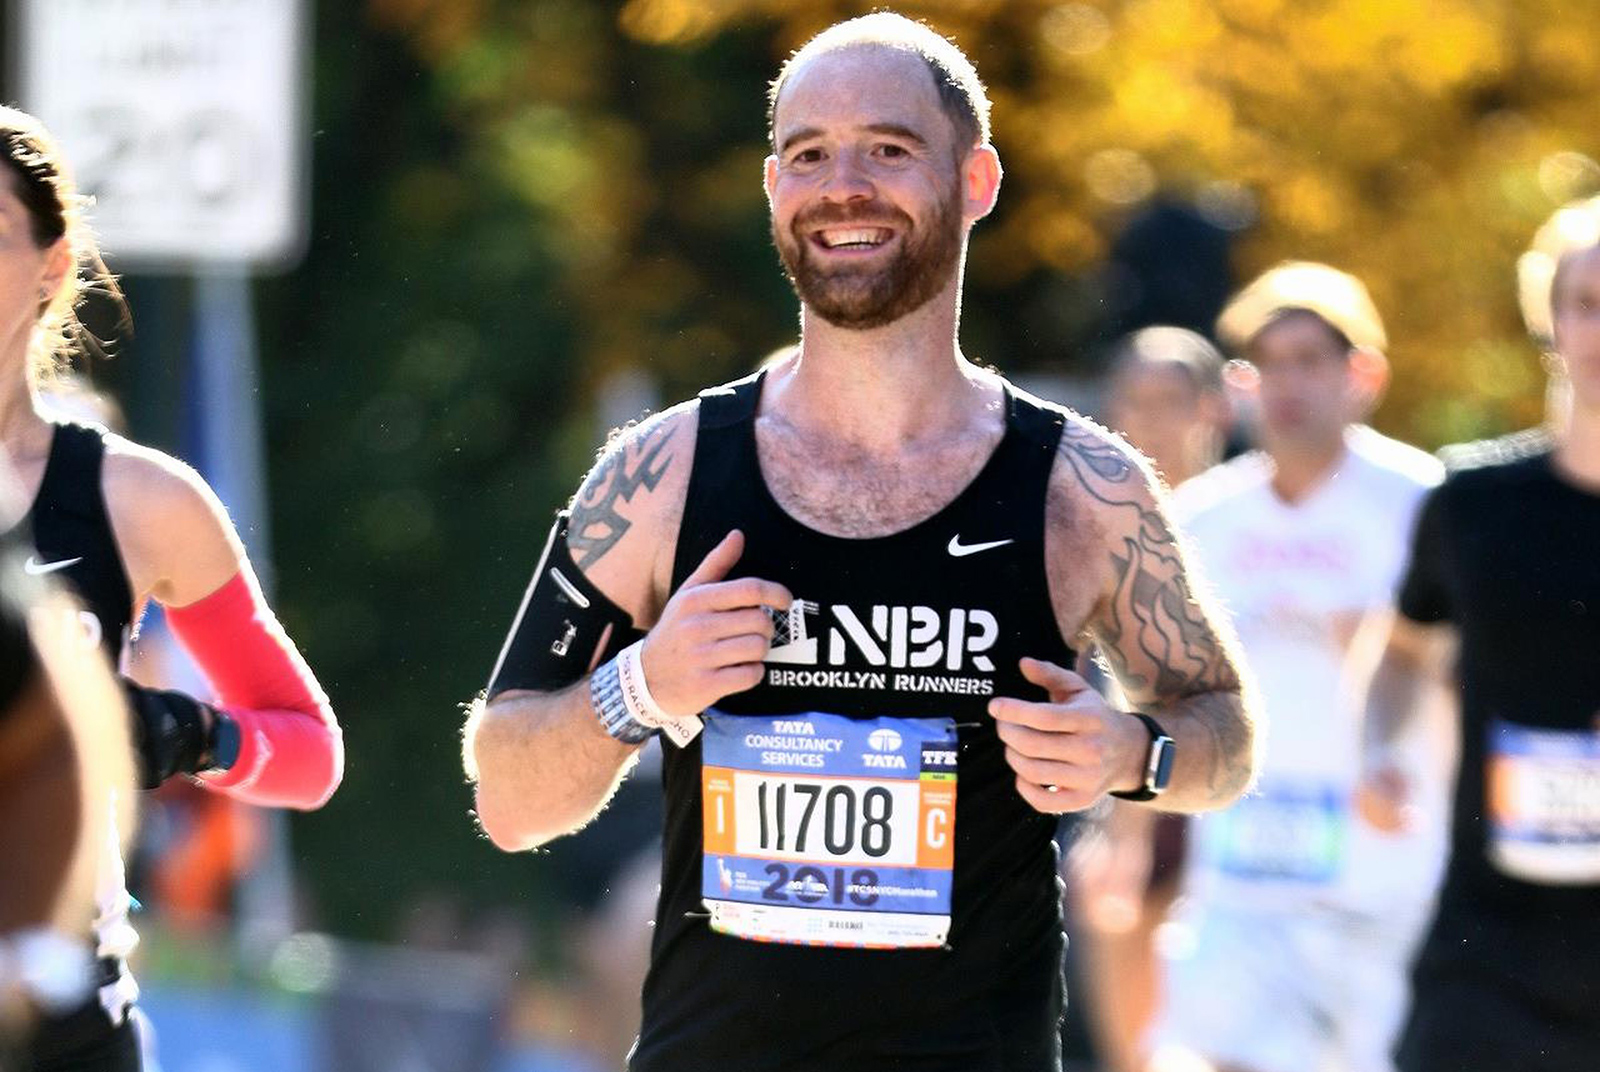 North Brooklyn Runners' James King